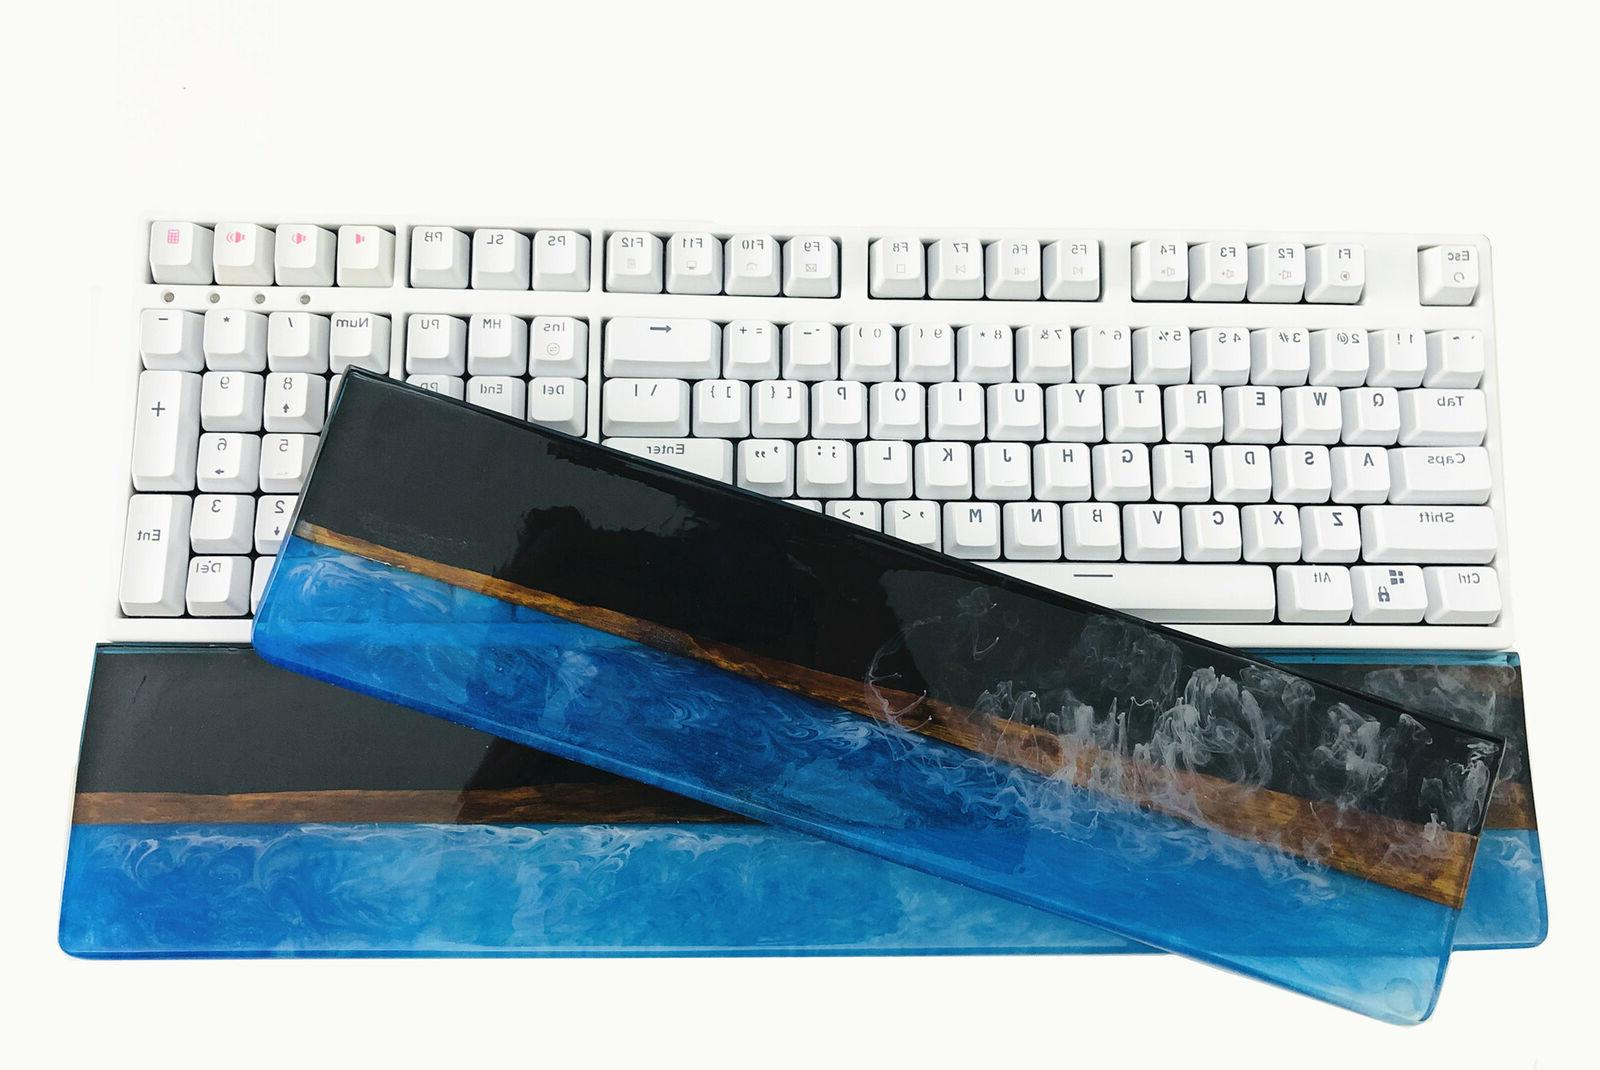 87/104 Resin & Wood Wrist Wrist Pad for Mechanical Keyboard